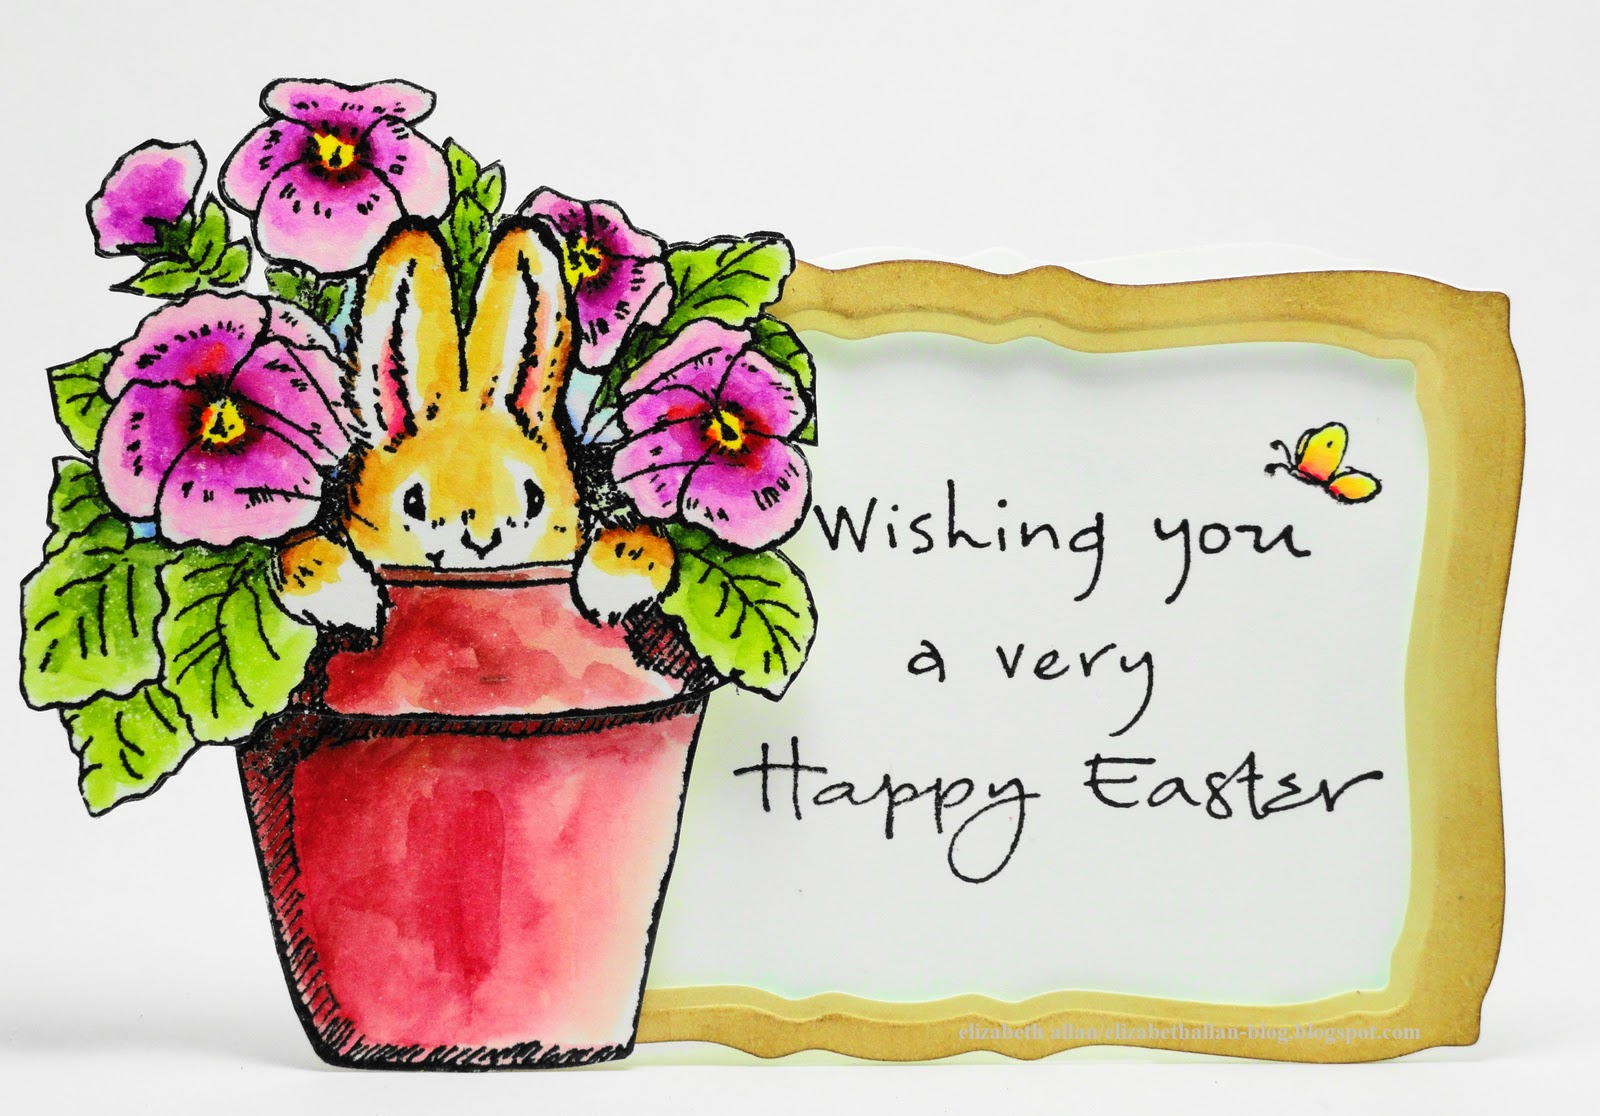 http://1.bp.blogspot.com/-fkfQg-UhEIE/UVgfWkFoZBI/AAAAAAAAAEc/cNmpoZS3Vcs/s1600/Wishing+You+a+Very+Happy+Easter.jpg